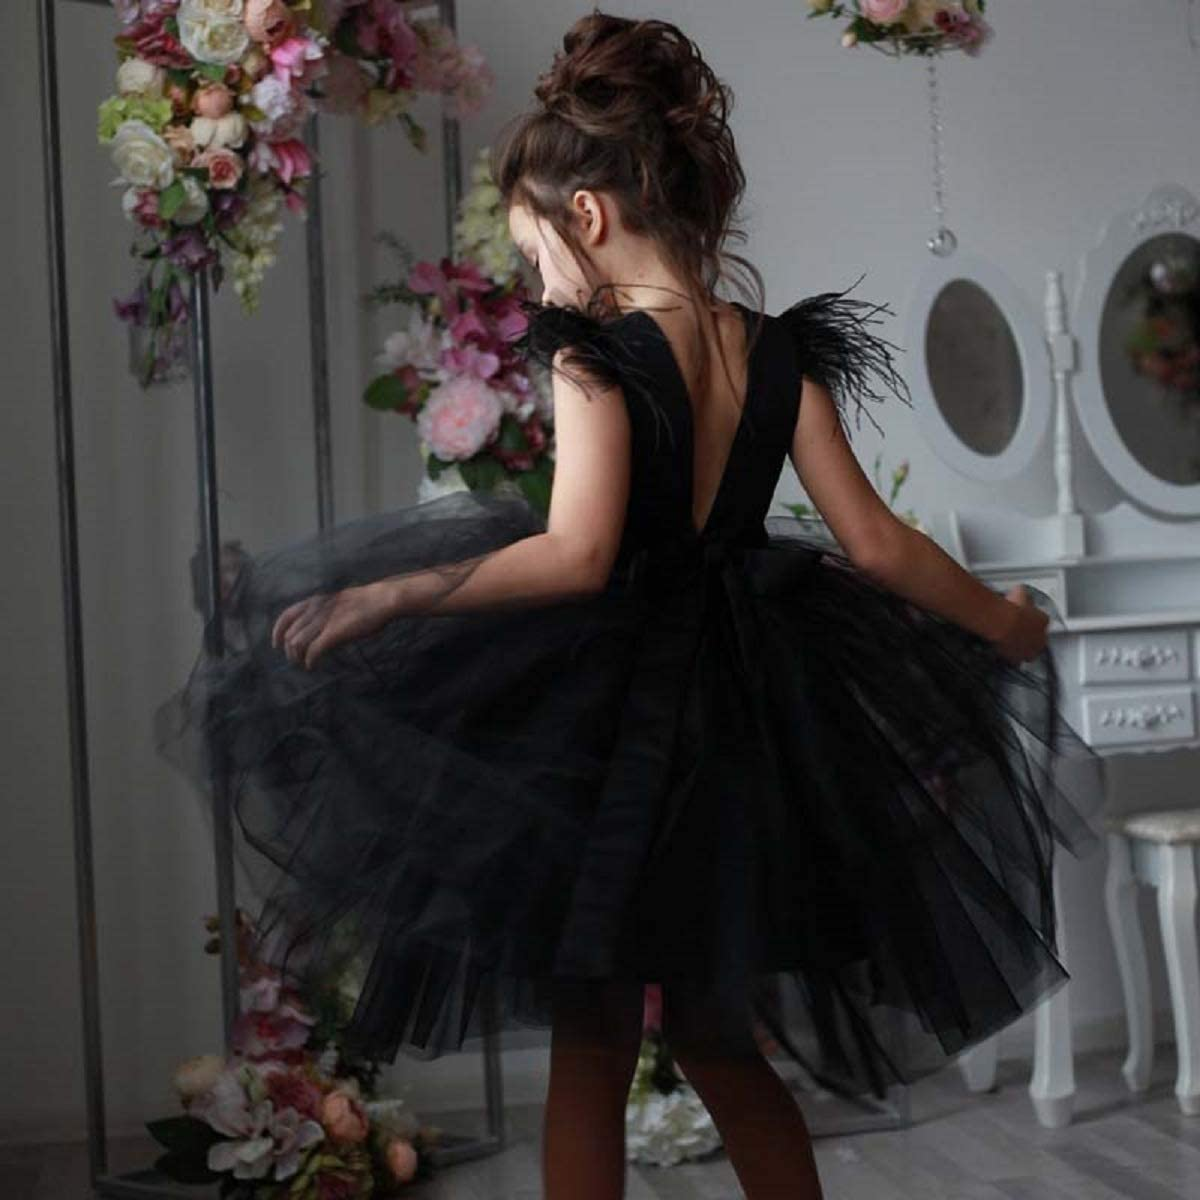 HEVECI Black Pageant Dresses for Girls 7-16 Short Knee Length Todder Party Prom Dress with Feathers